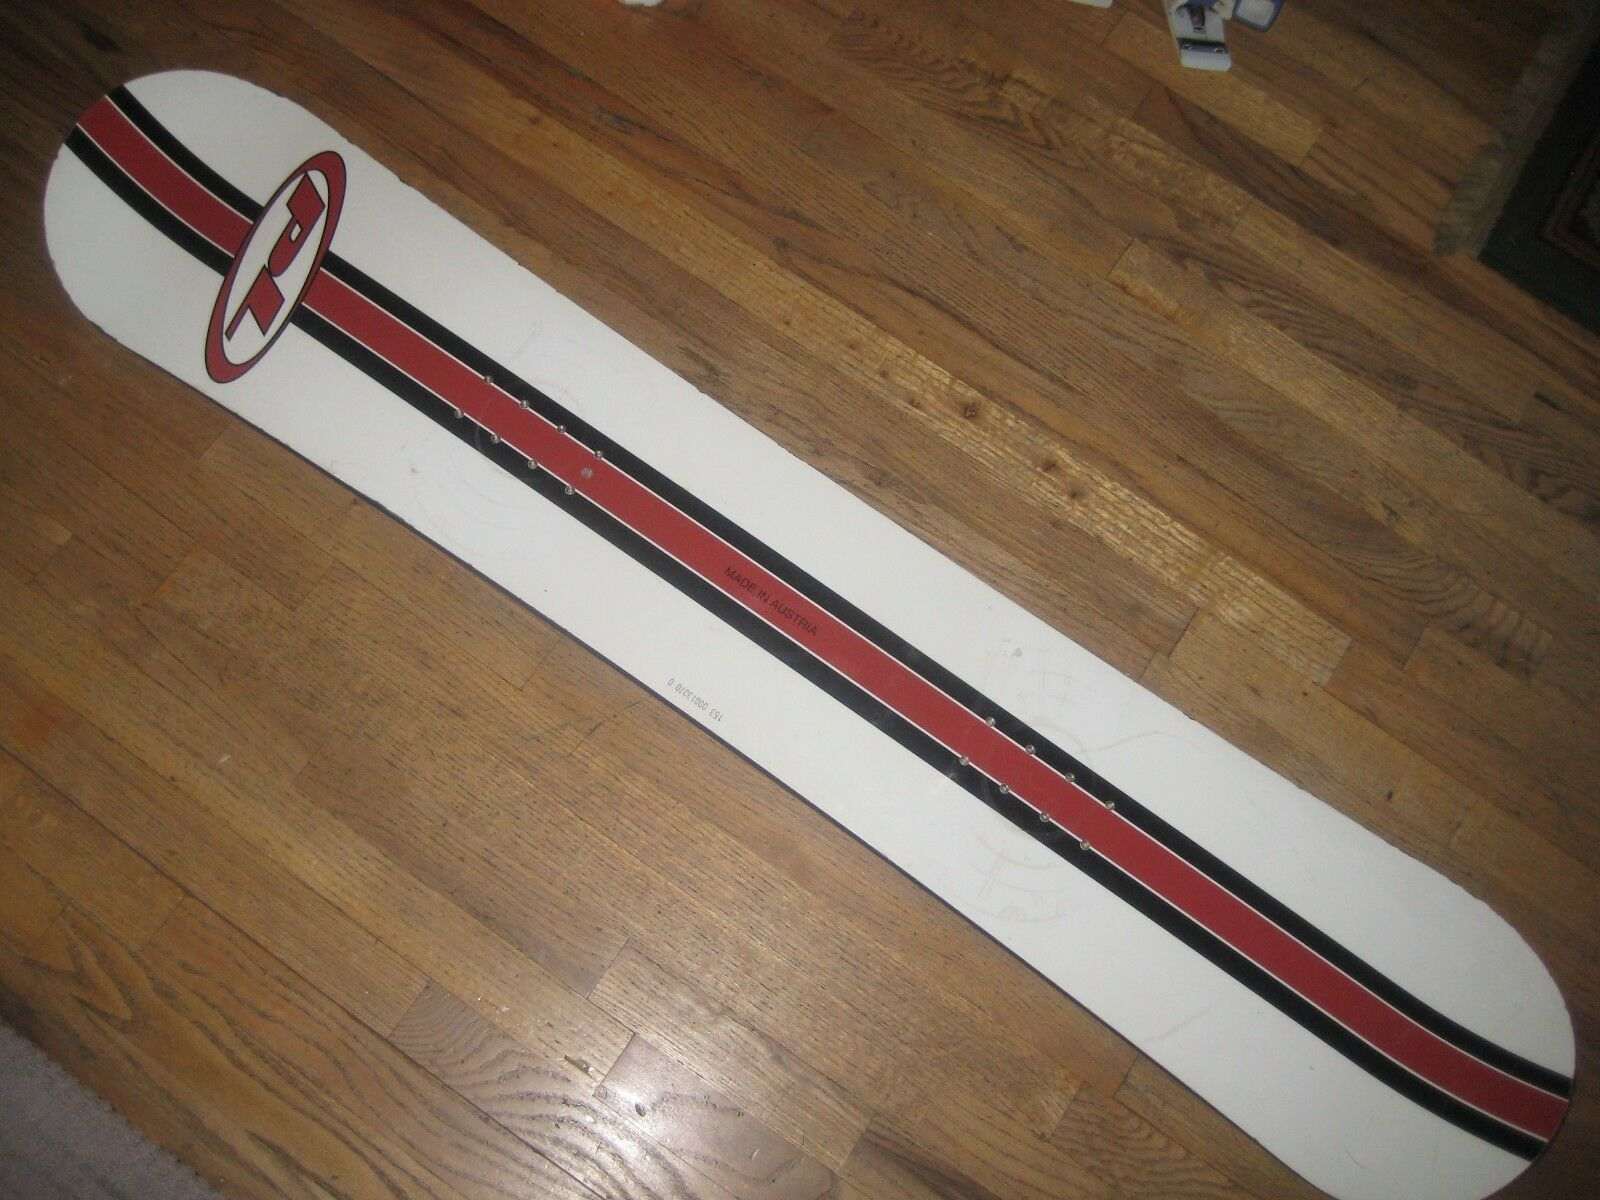 RARE VINTAGE  PL SNOWBOARD SNOW BOARD  153 cm MADE IN AUSTRIA  up to 65% off